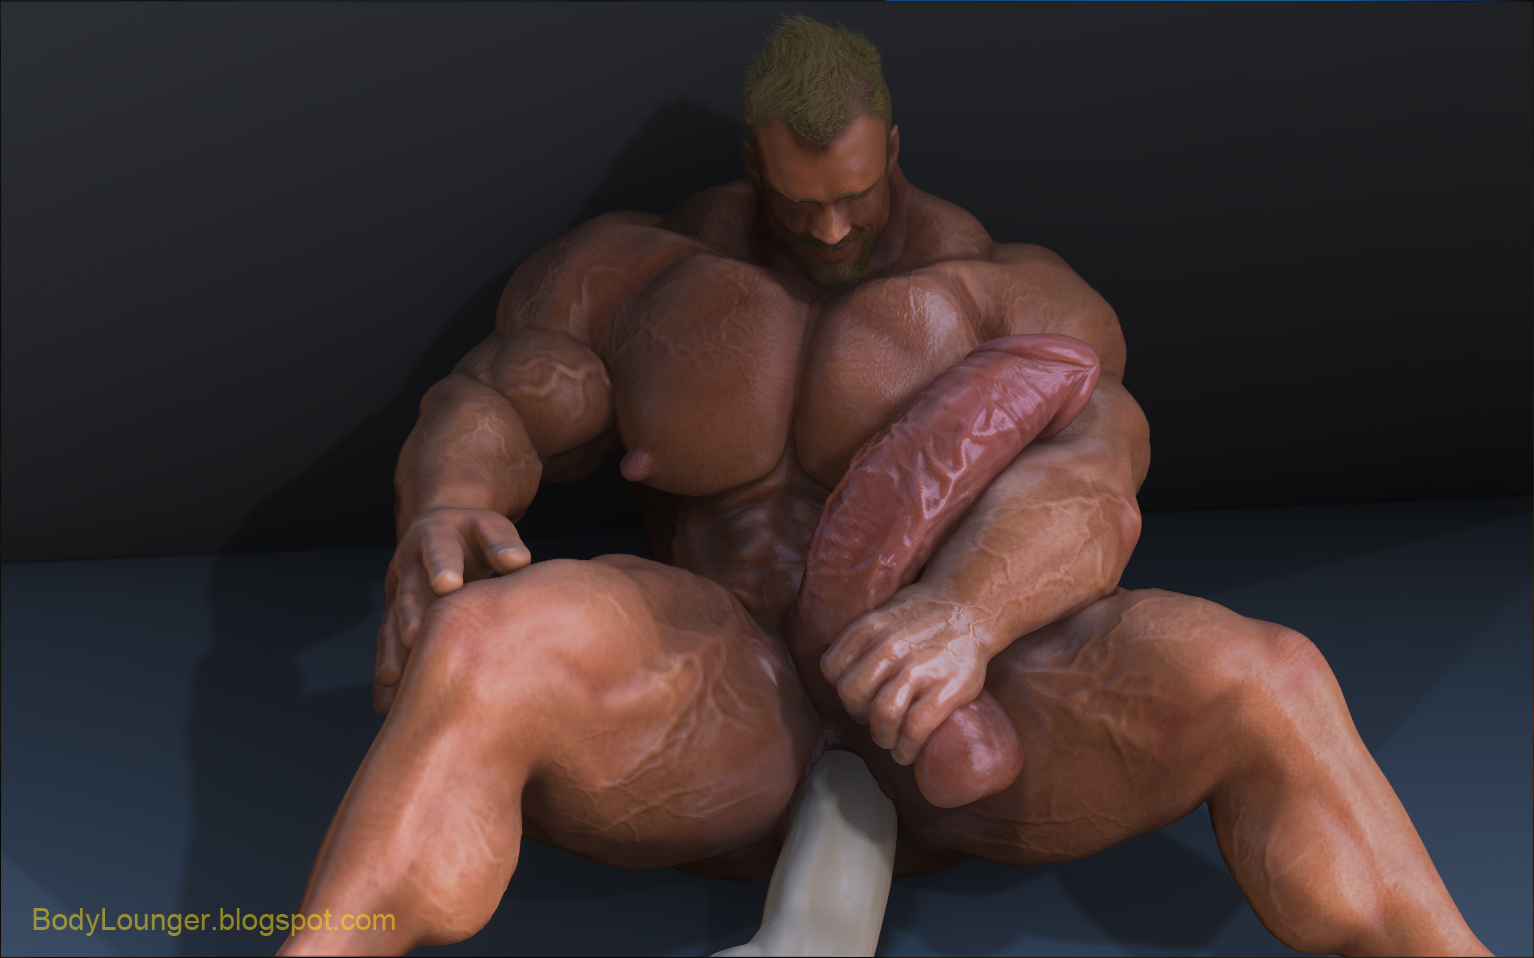 Gay male erotic art